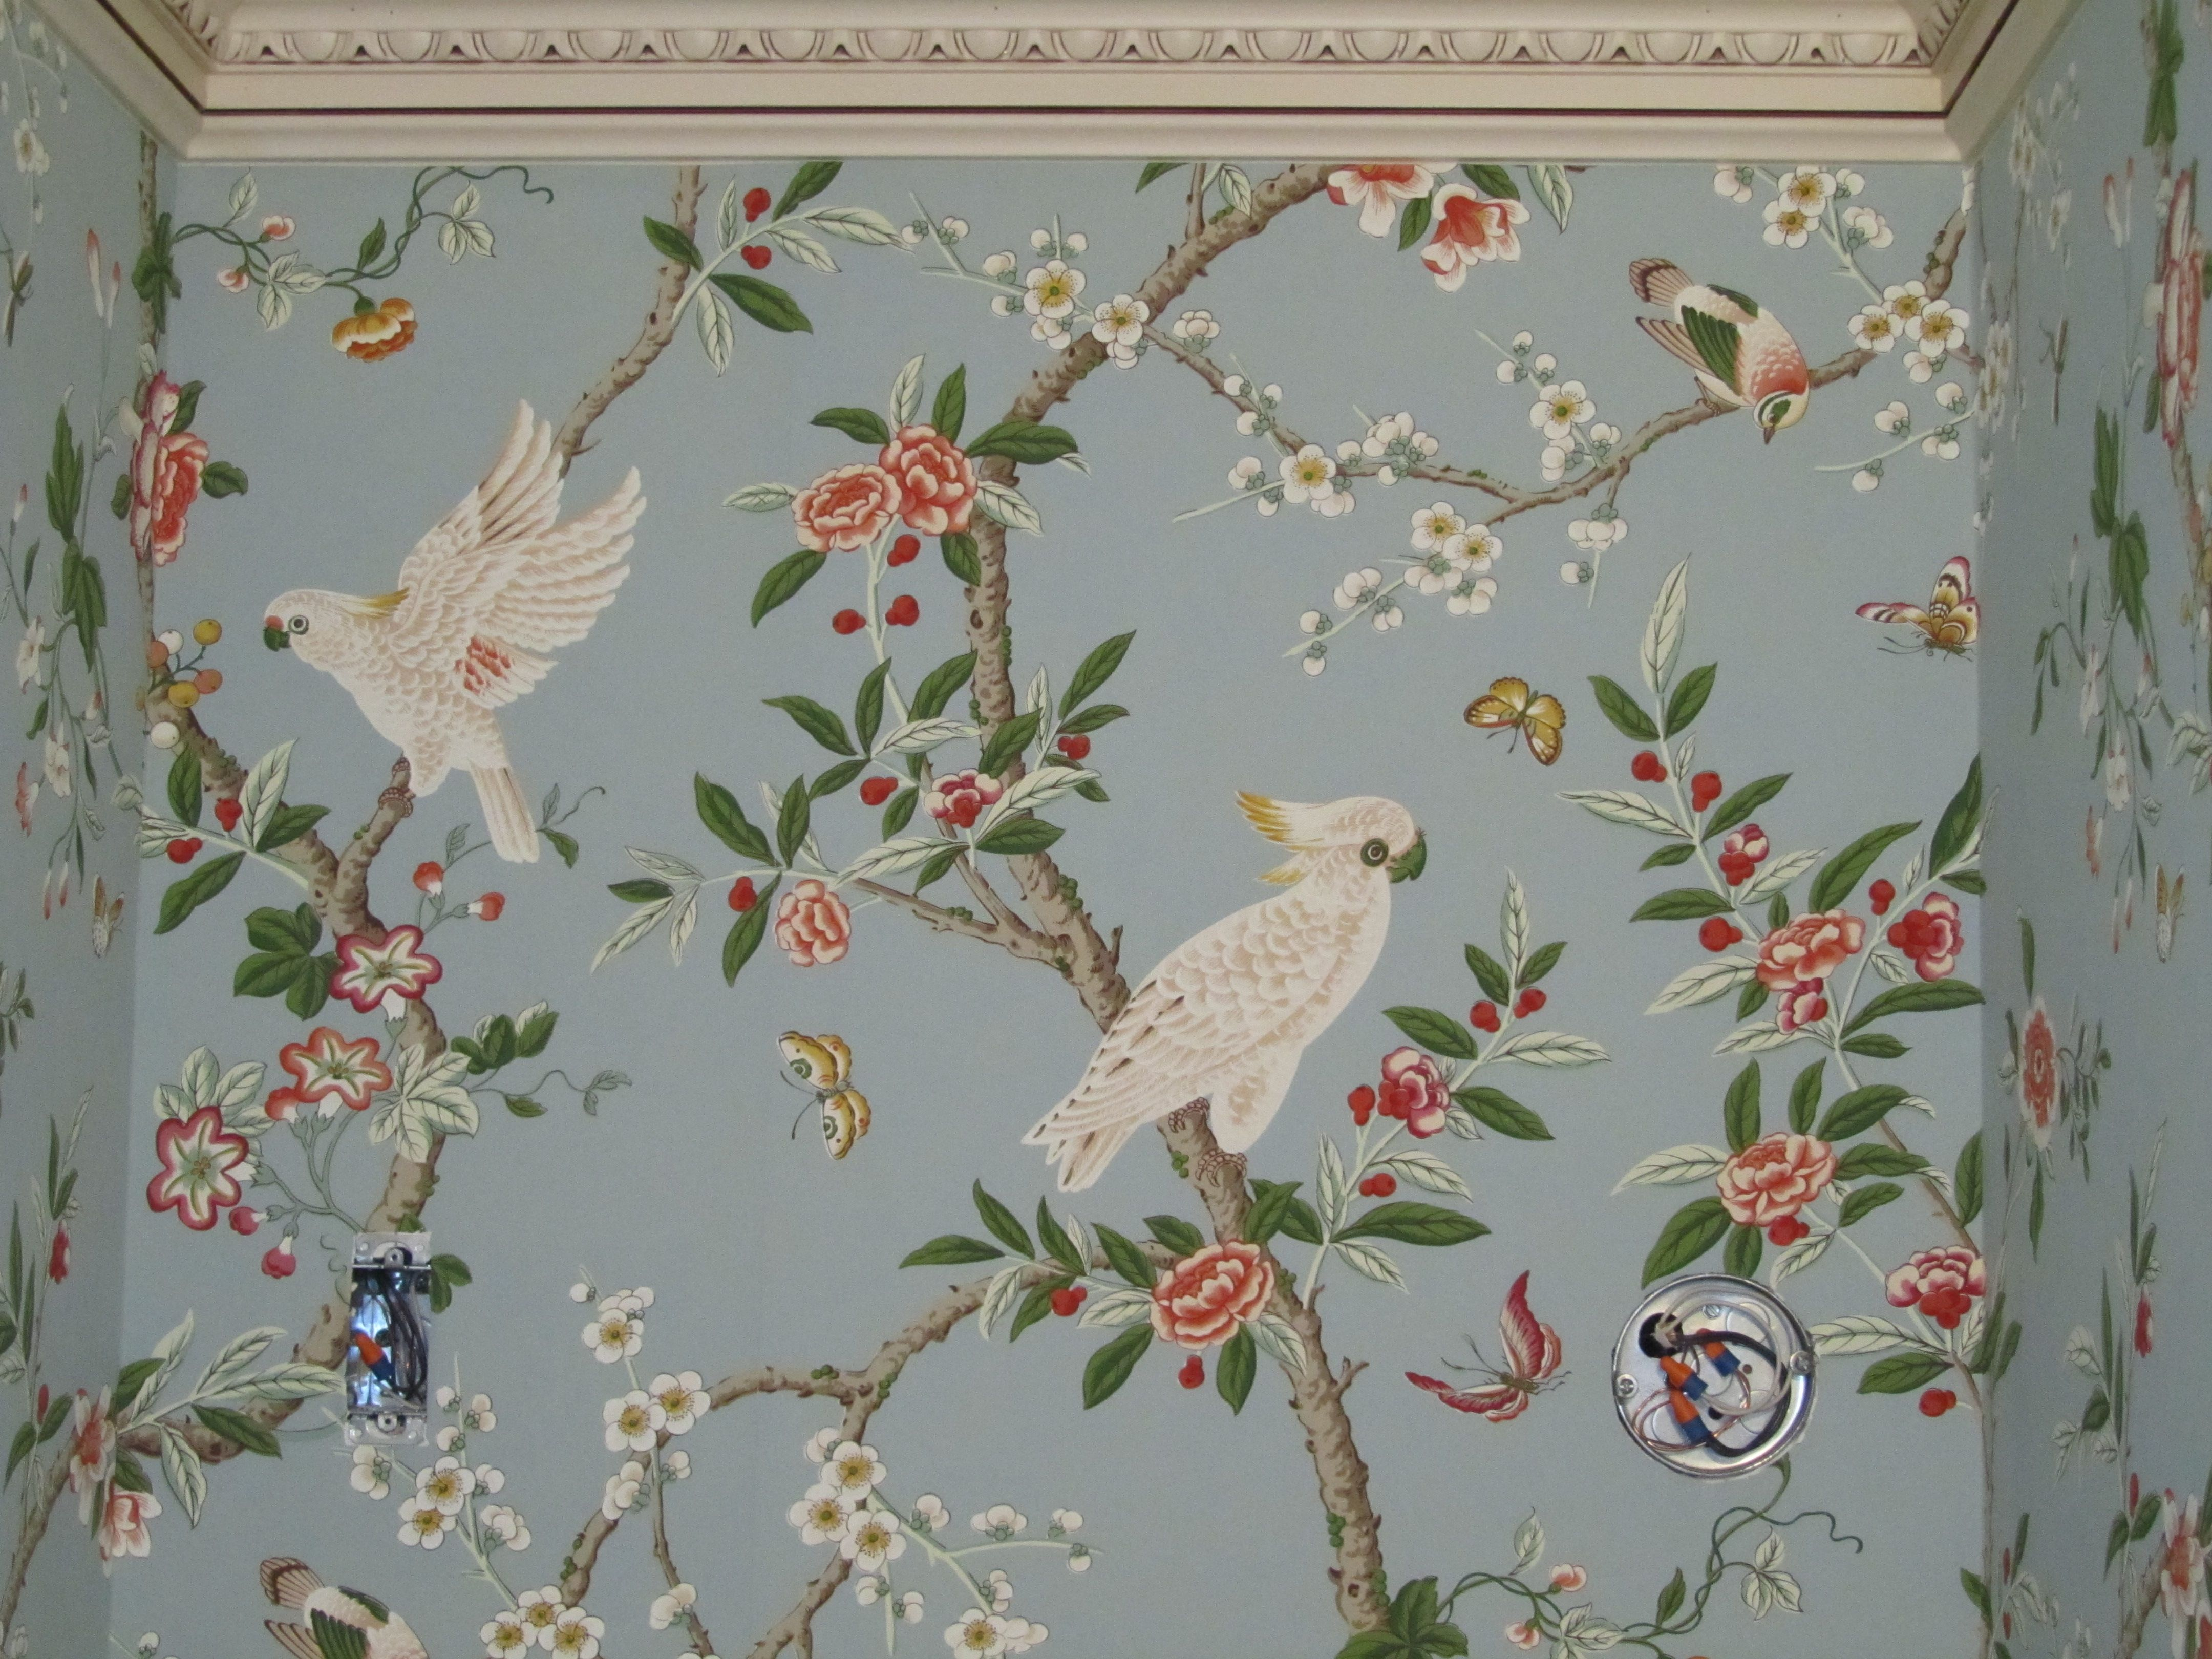 First Class Paperhanging In Saddle River Nj House Painter How To Install Wallpaper Saddle River